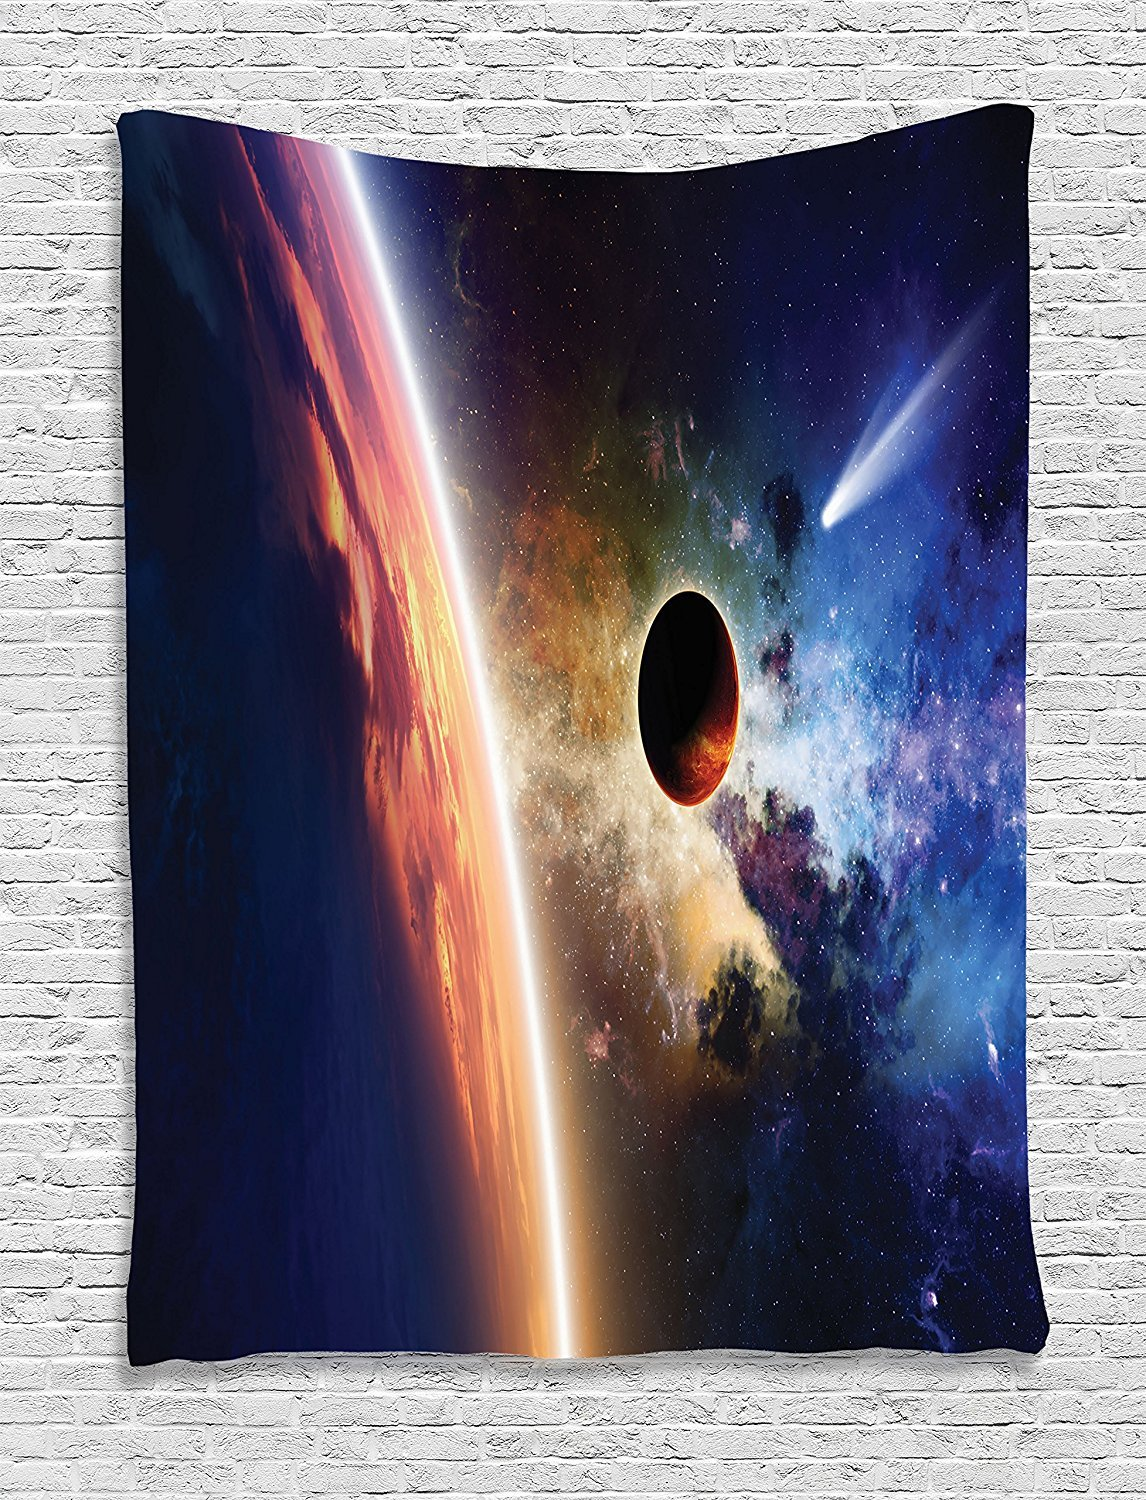 asddcdfdd Outer Space Decor Tapestry, Comet Approaches Planet Scientific Facts Realities in Solar System World Scene, Bedroom Living Room Dorm Decor, 40 W x 60 L Inches, Red Blue